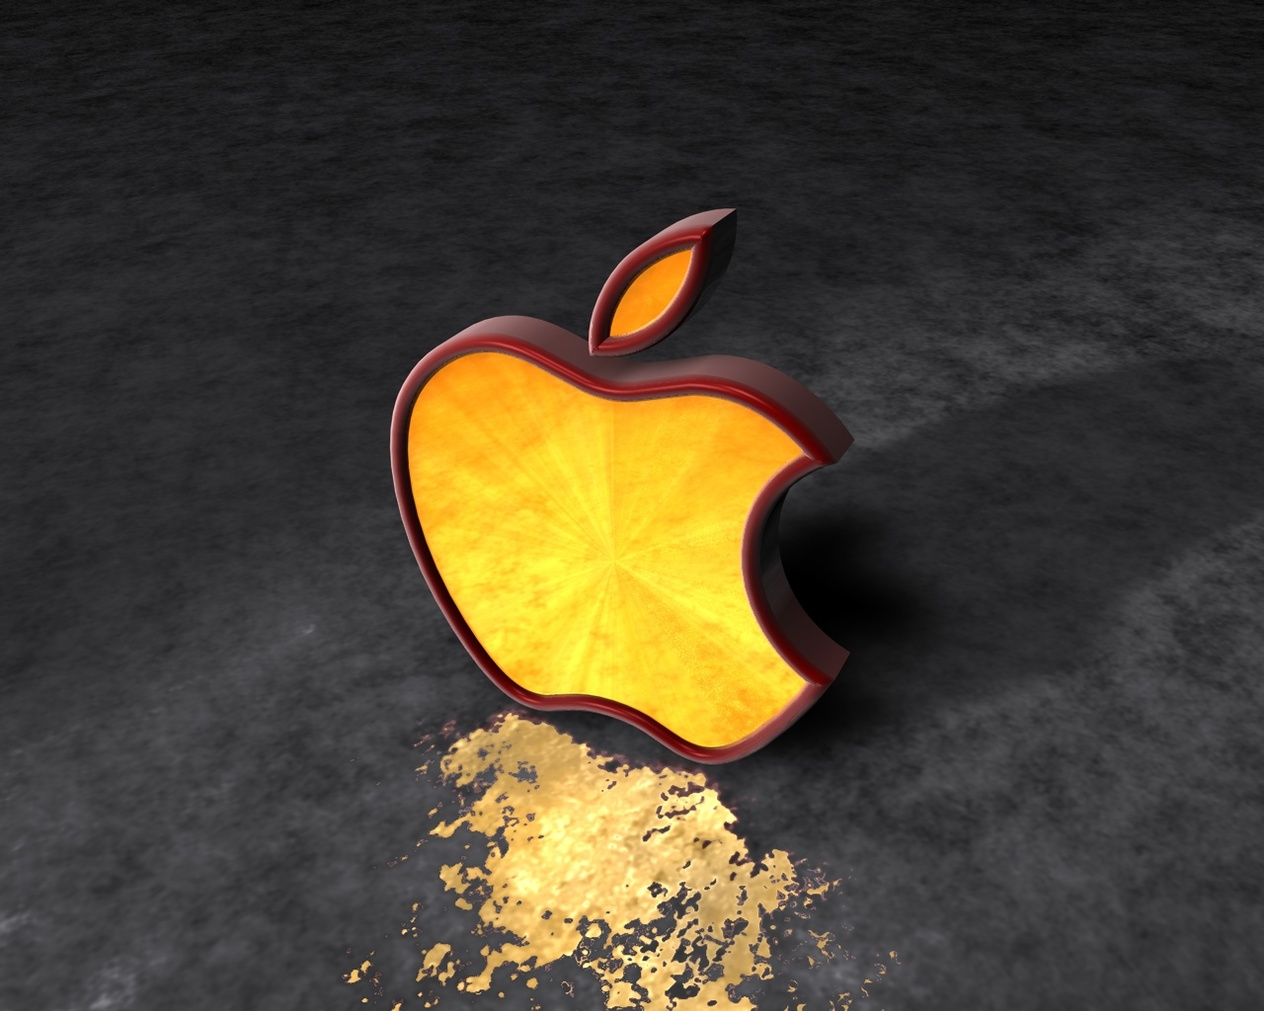 http://3.bp.blogspot.com/-6dppgZ8dIRo/Tt8RKVF7C7I/AAAAAAAAHZU/U5gMtf2FspI/s1600/mac-wallpapers-Apple-by-blackbelt777.jpg